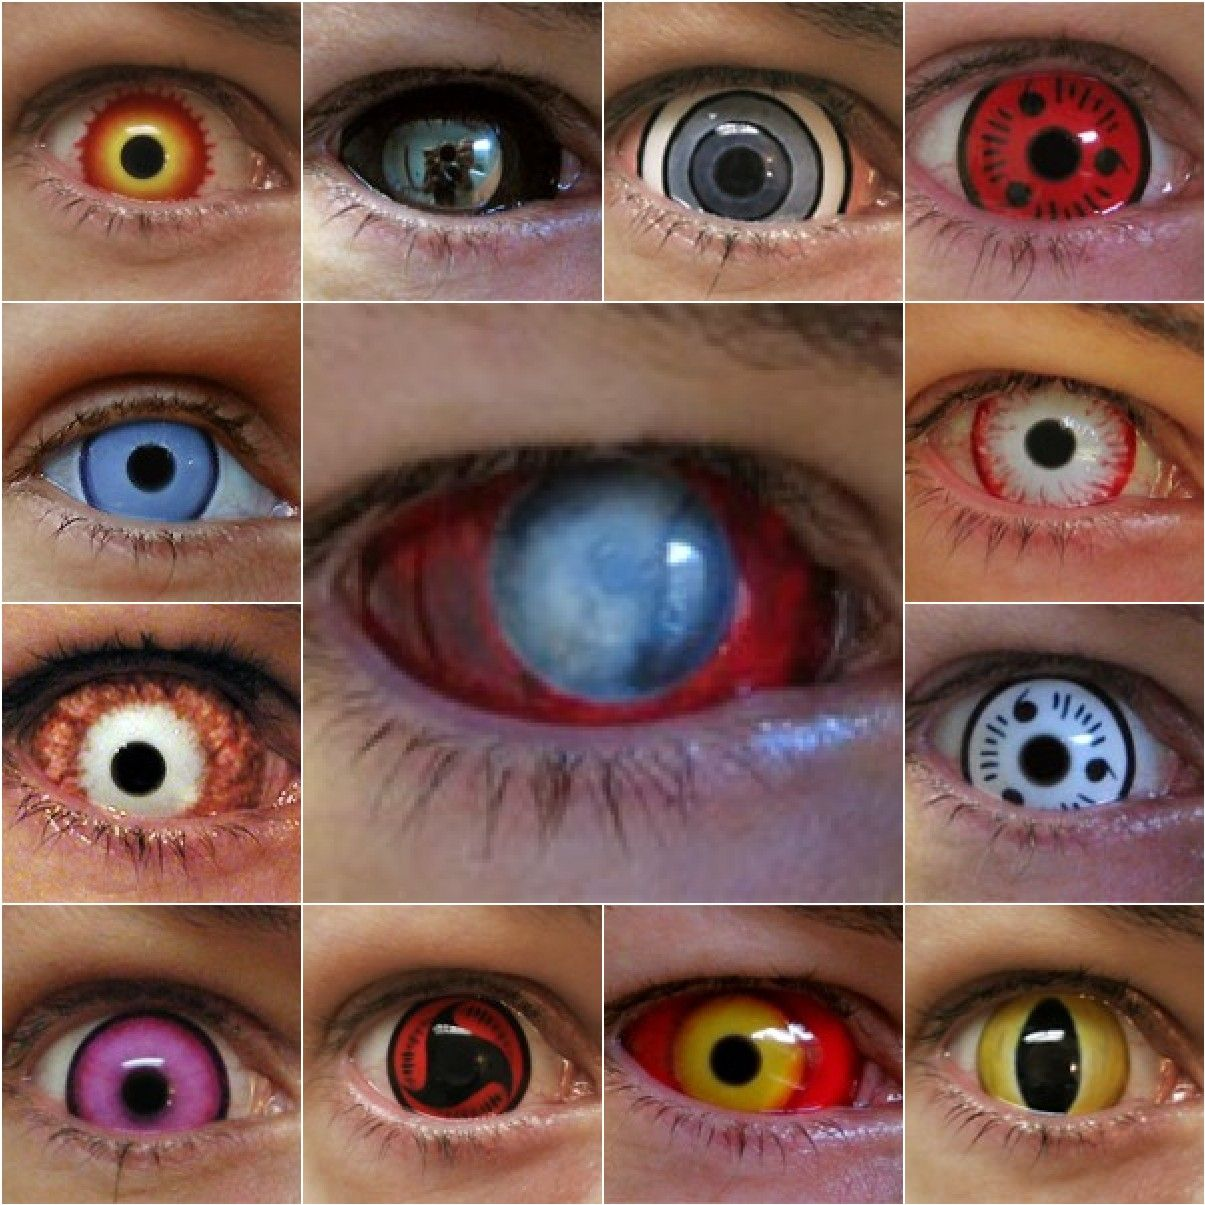 crazy photos | emorfes: crazy contact lenses | dark delight : horror